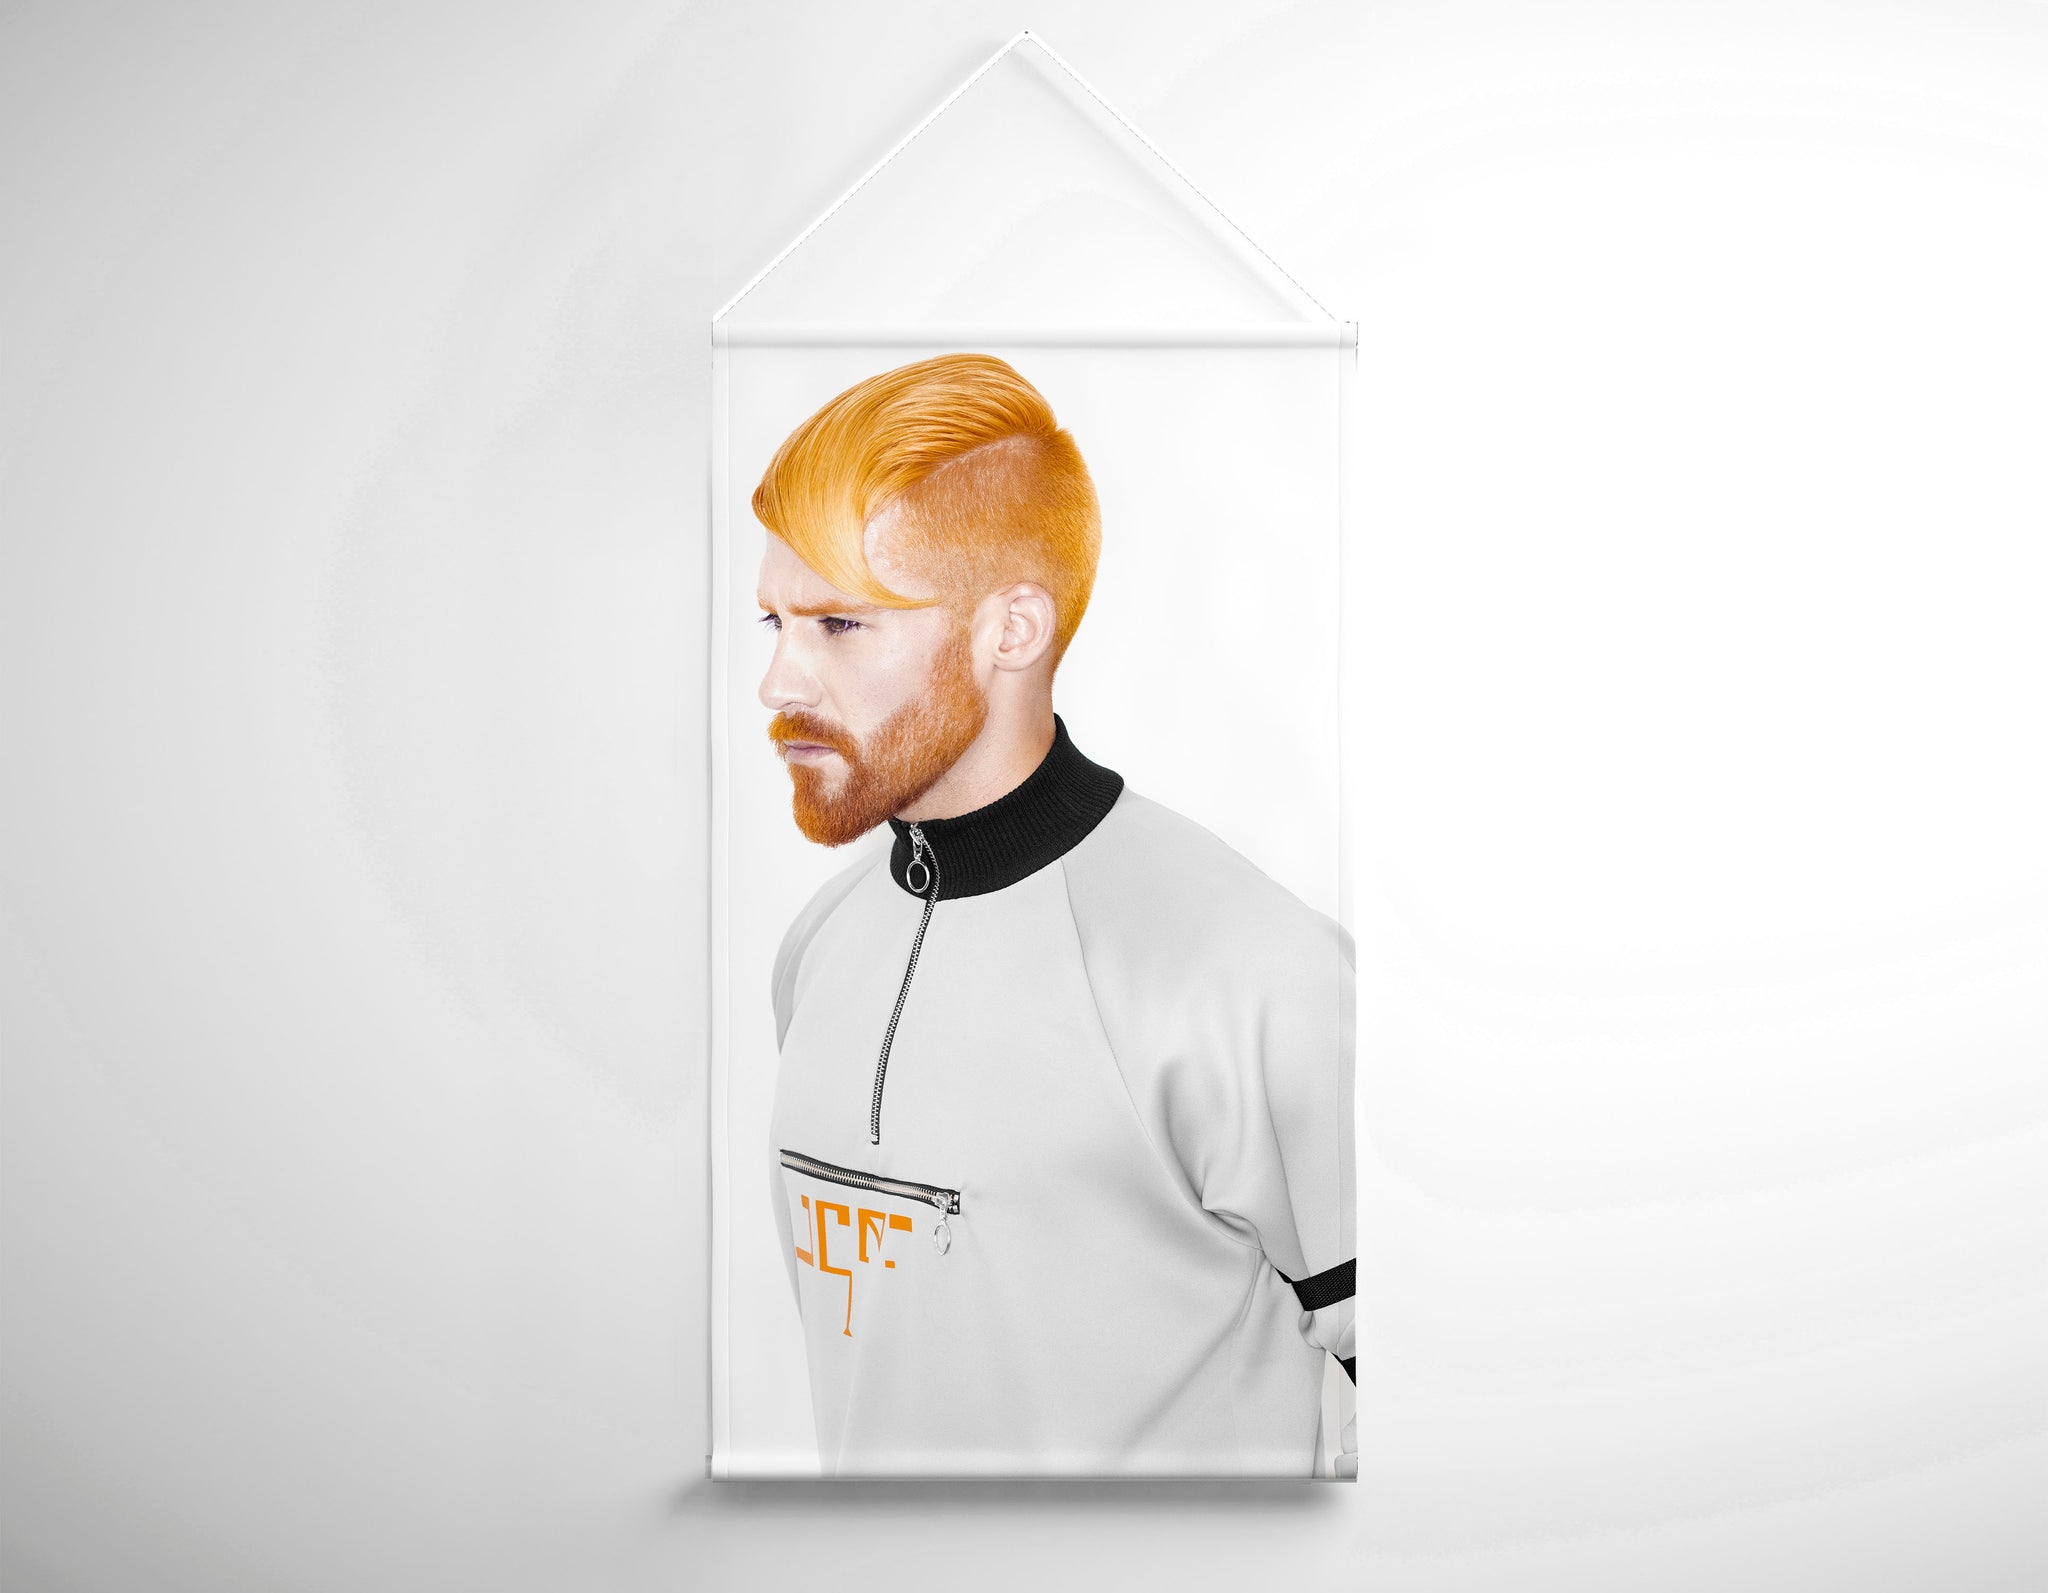 Textile Salon Banner - Man with High Fade Quiff and Fringe Haircut with Orange Hair color